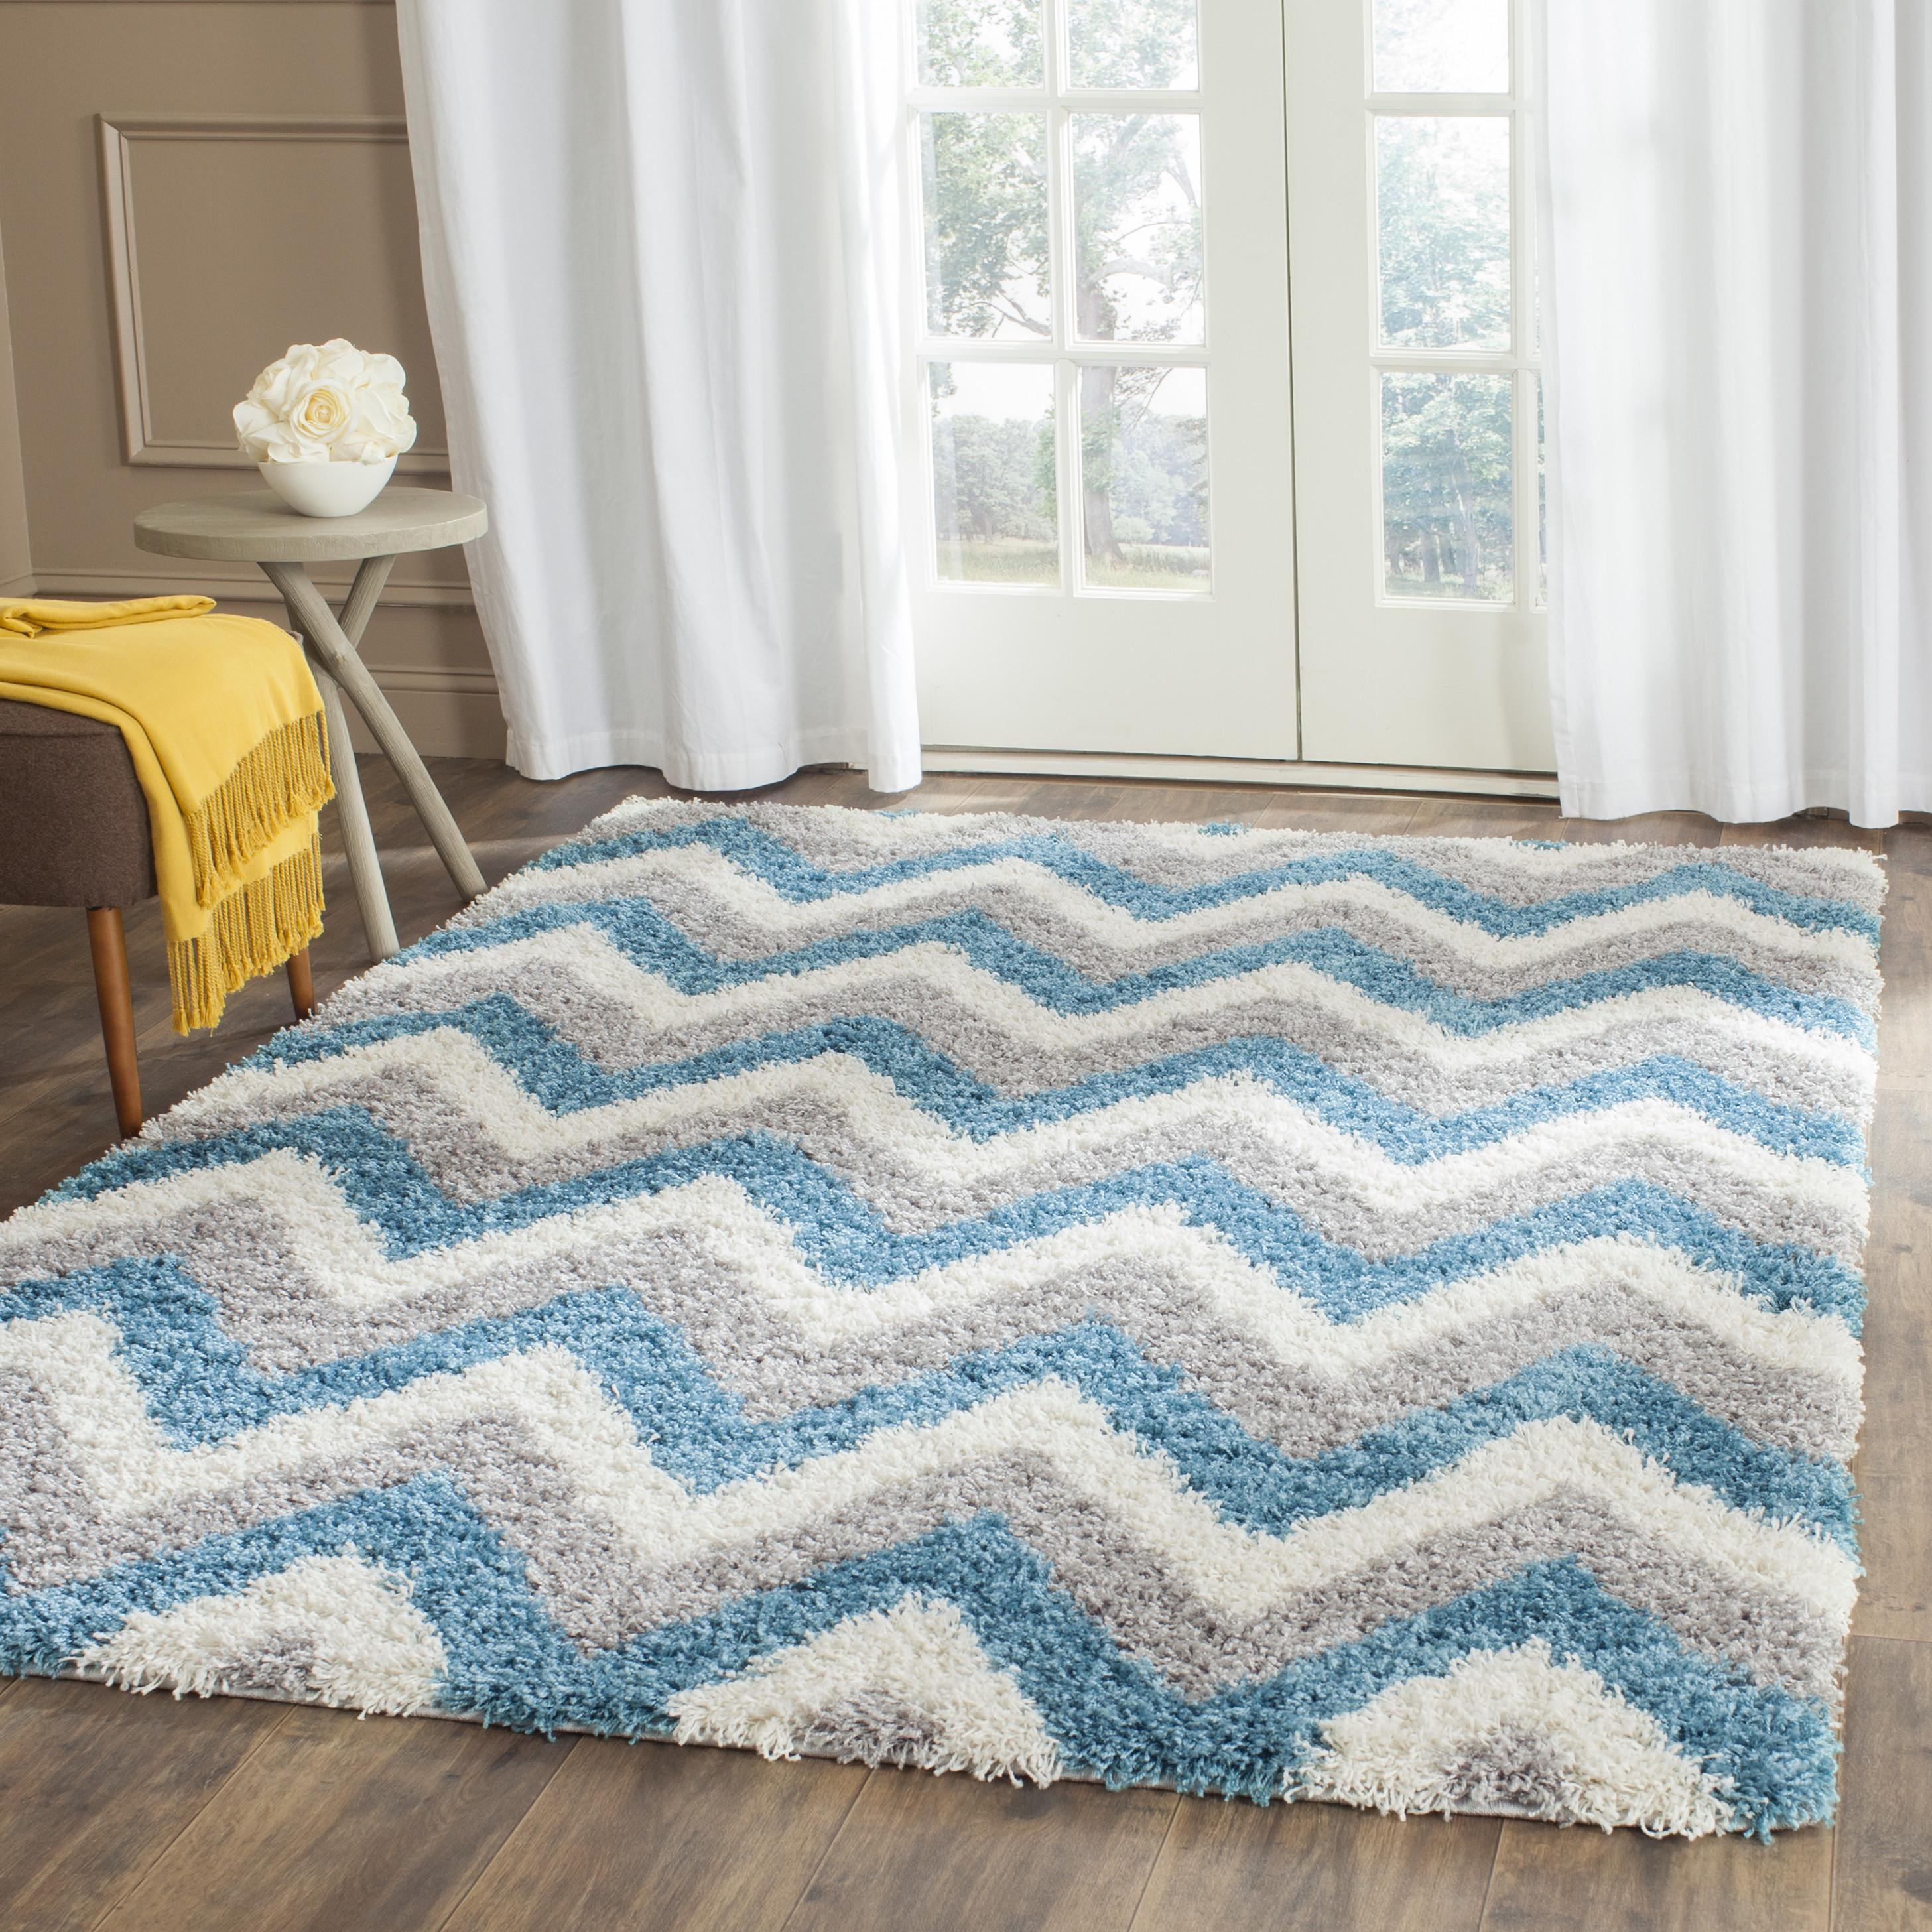 Decor Kids Bedroom Ideas Navy Blue Area Rug